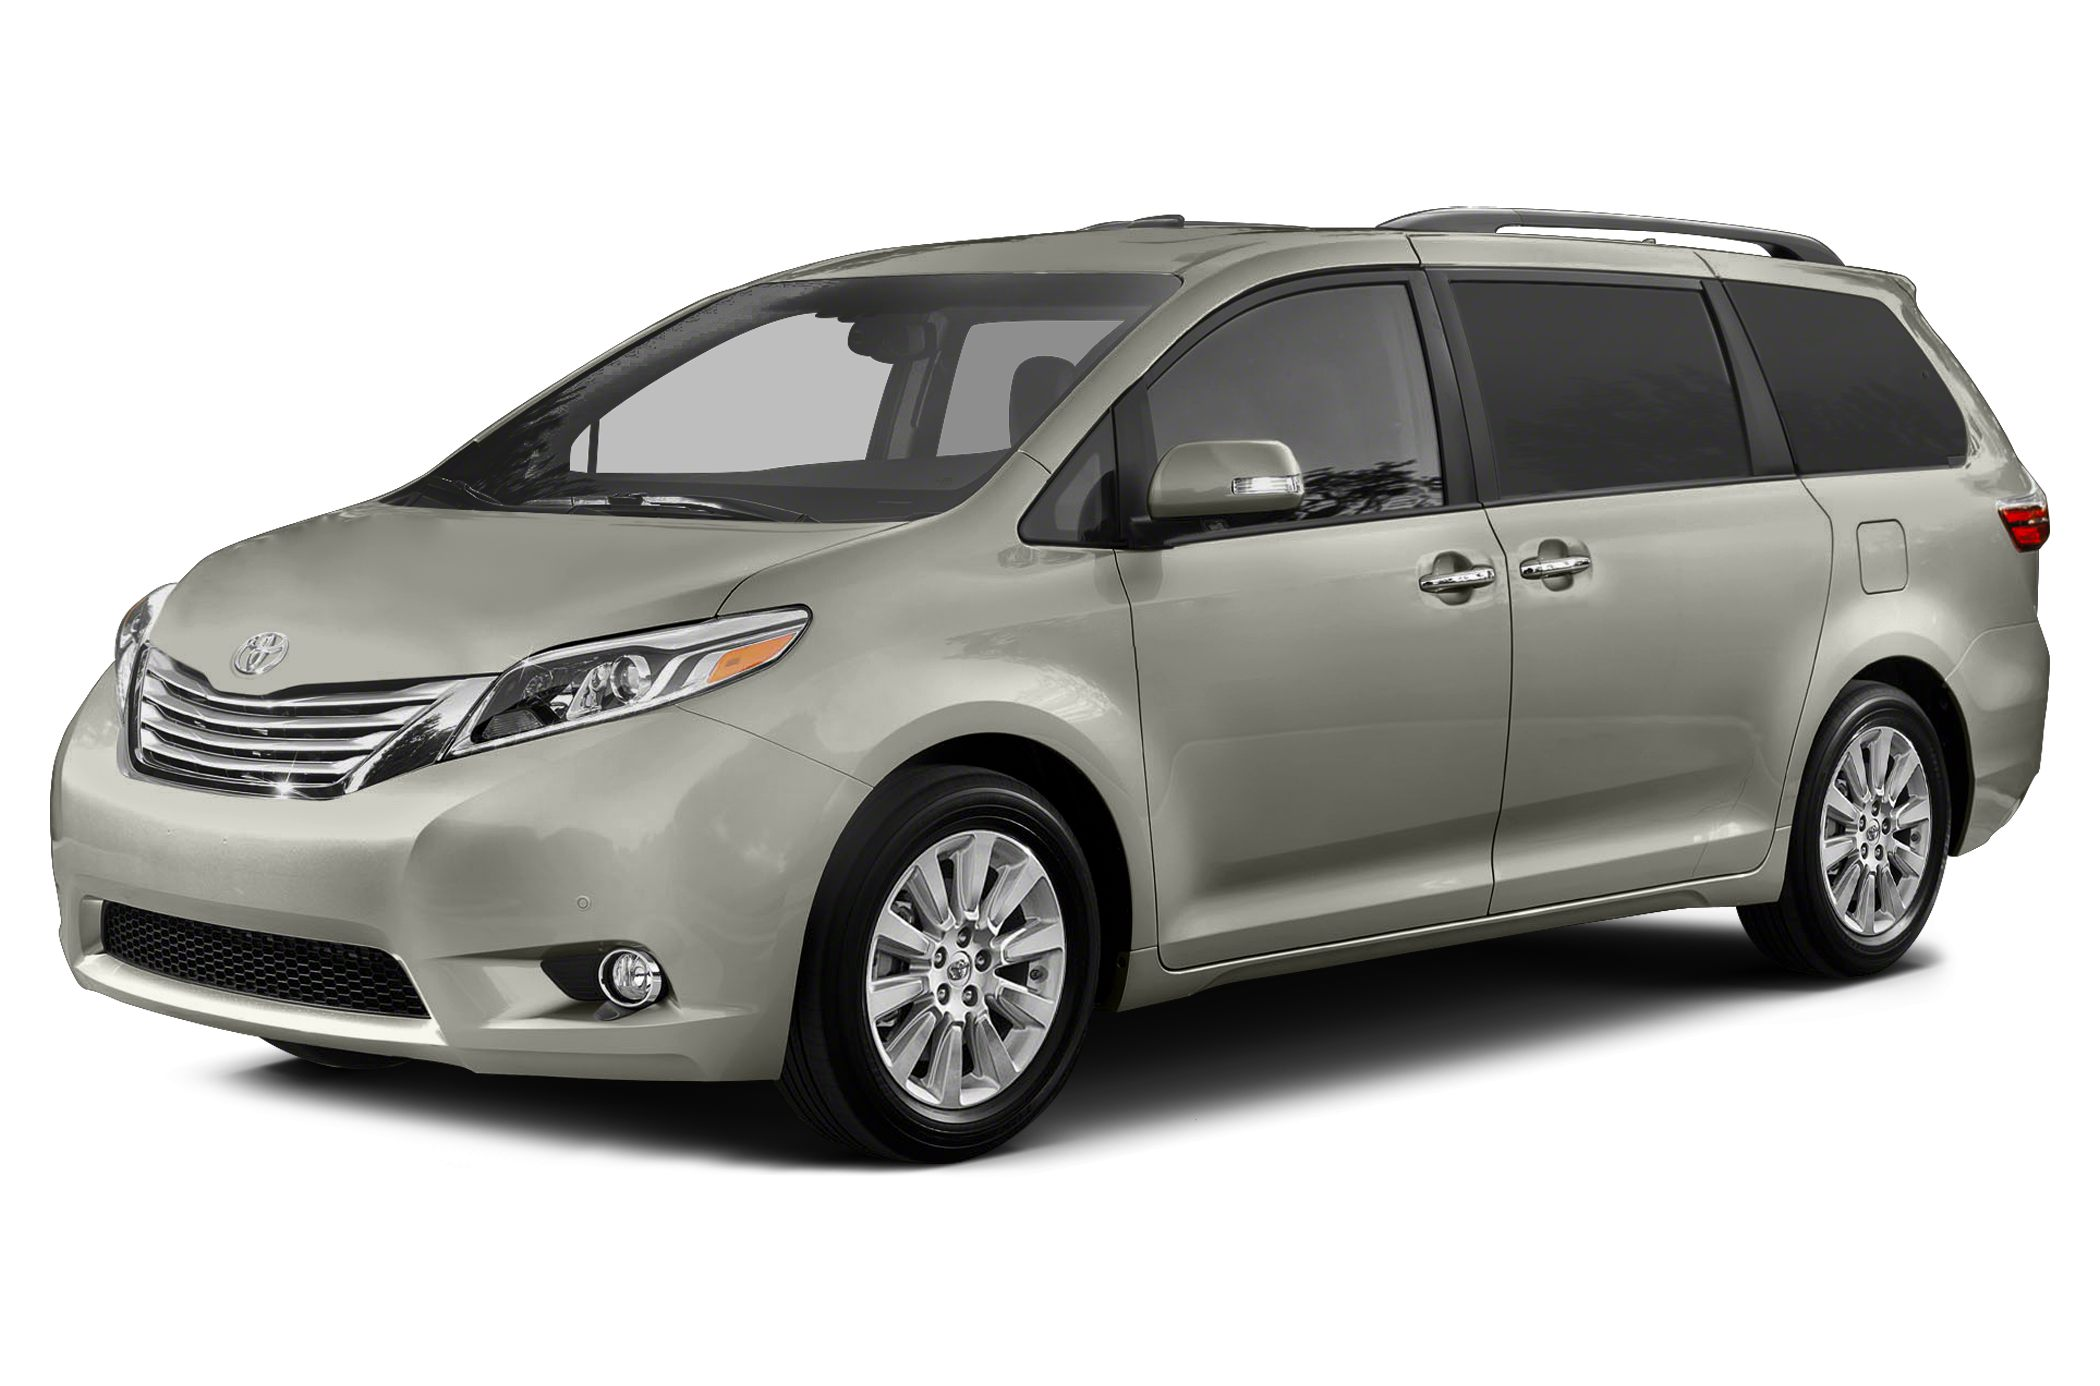 2015 Toyota Sienna XLE Minivan for sale in Bronx for $36,274 with 2 miles.